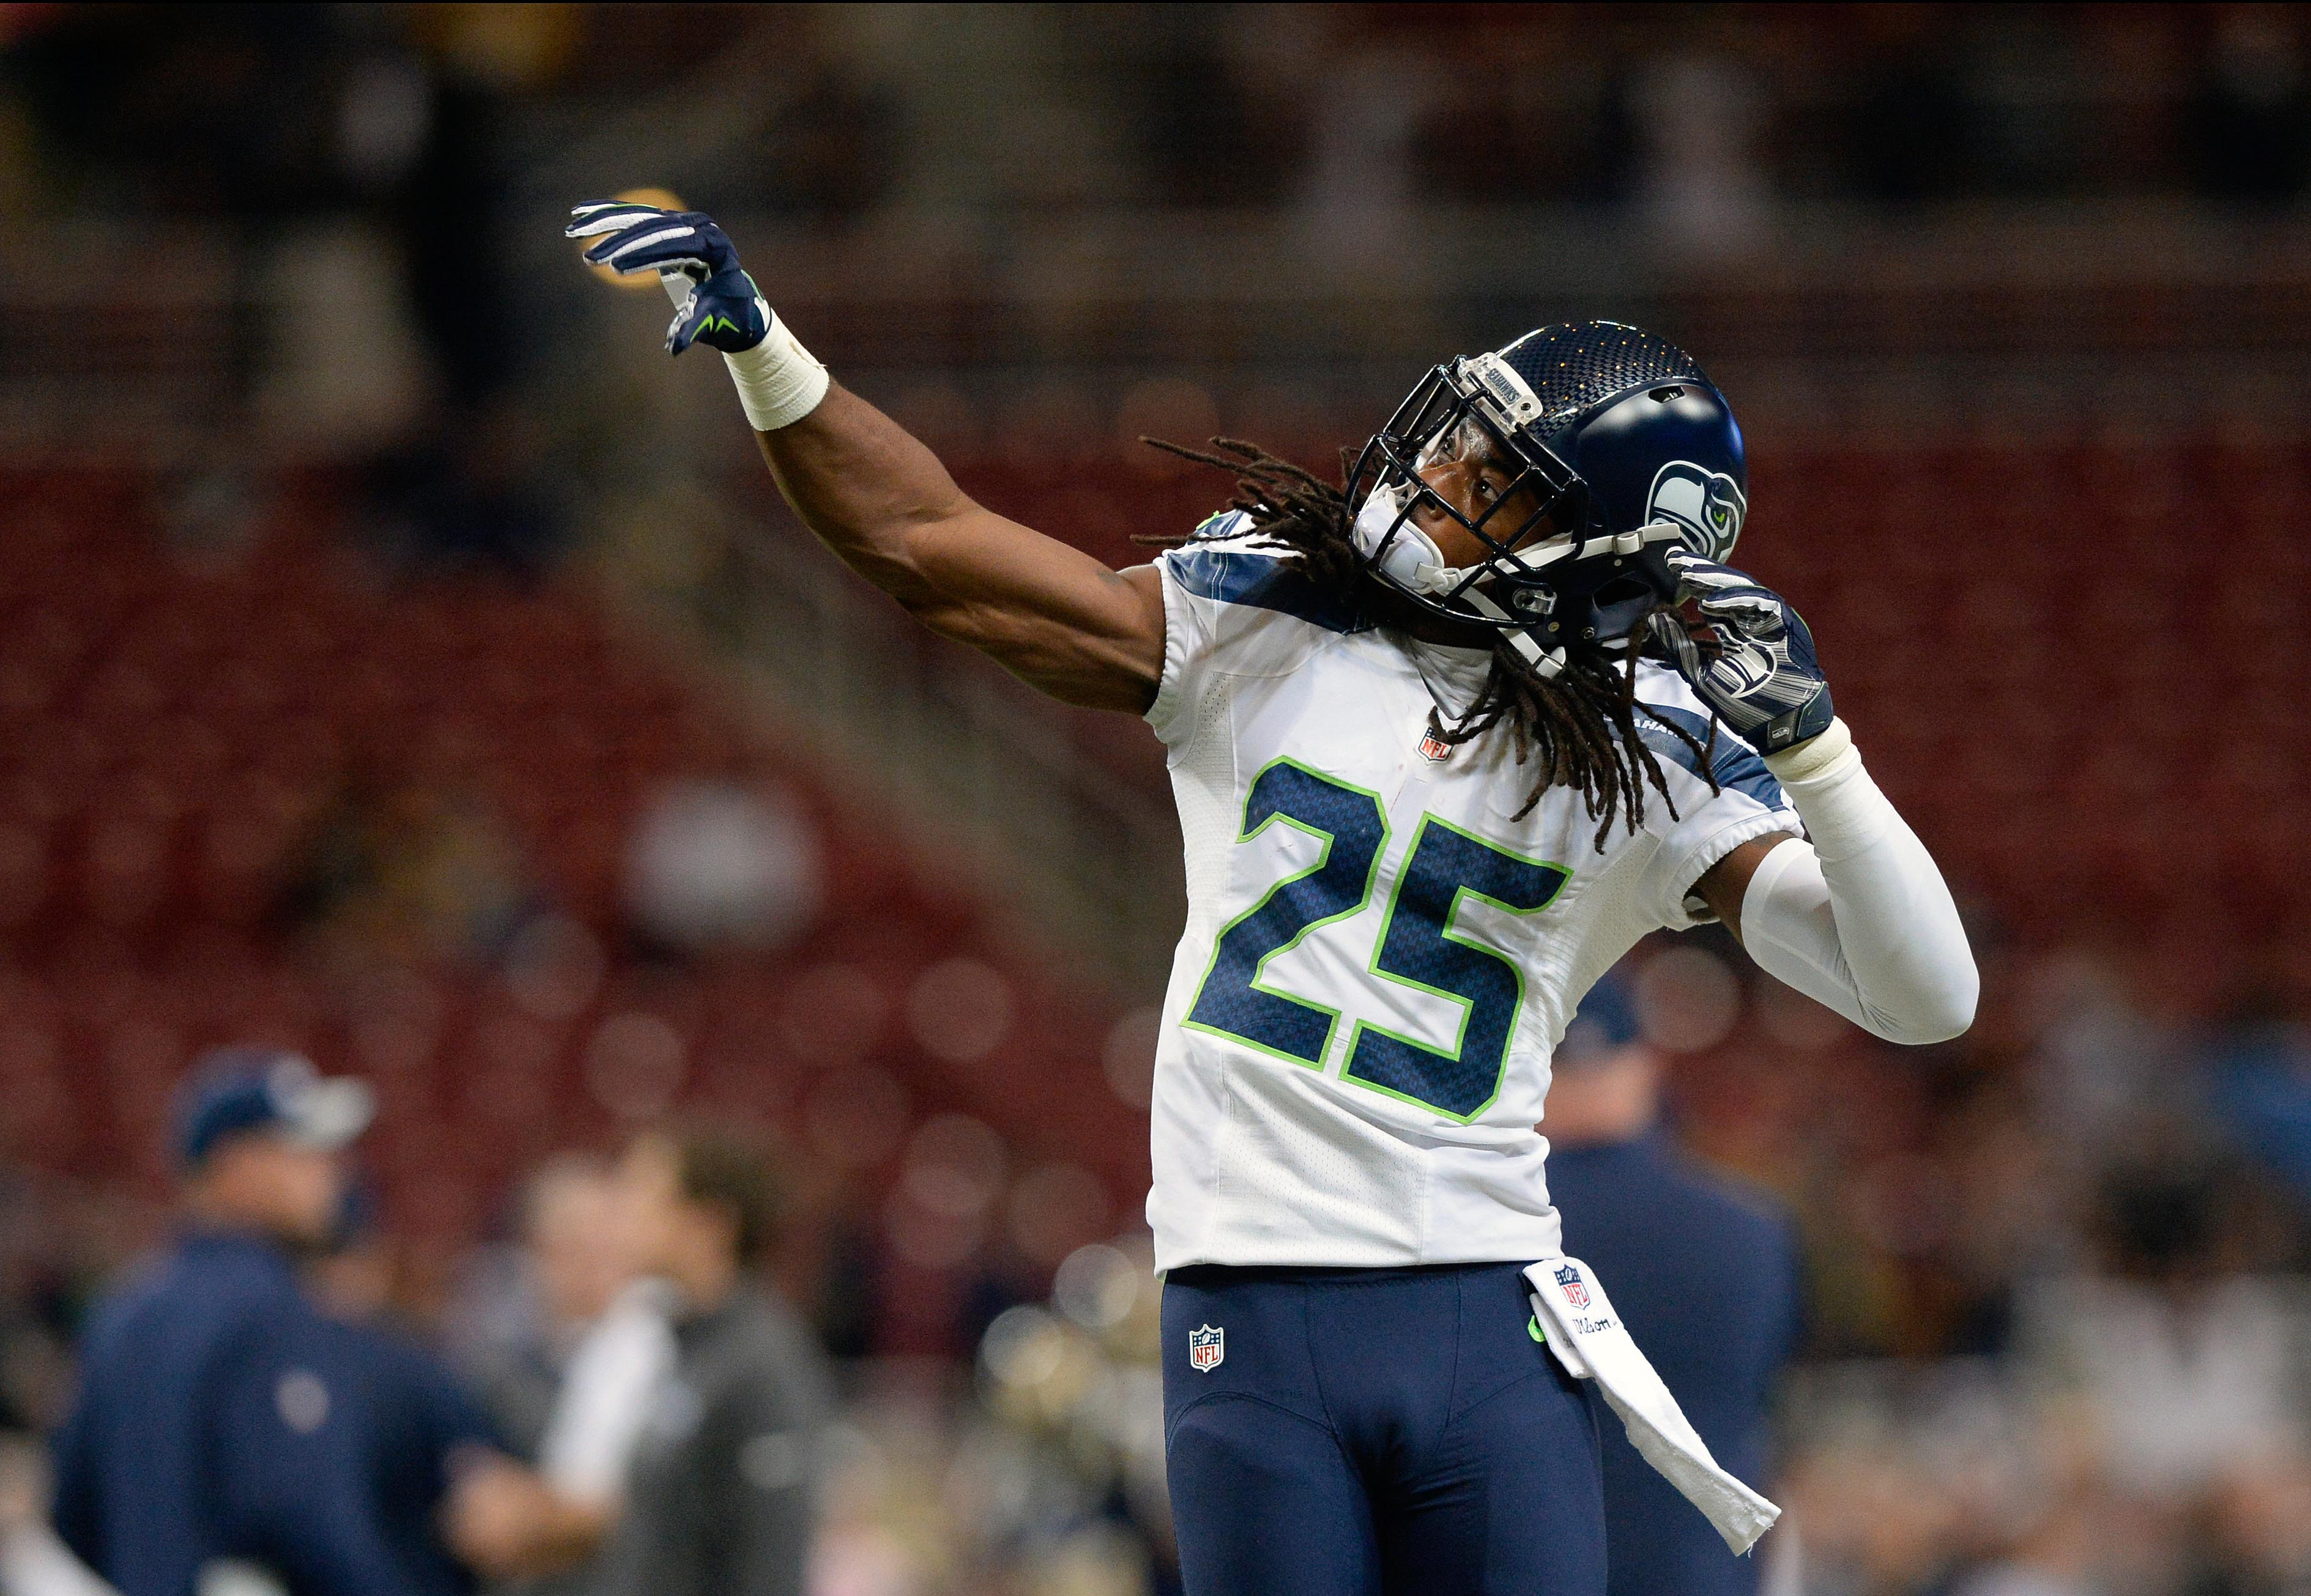 8808207-nfl-seattle-seahawks-at-st.-louis-rams